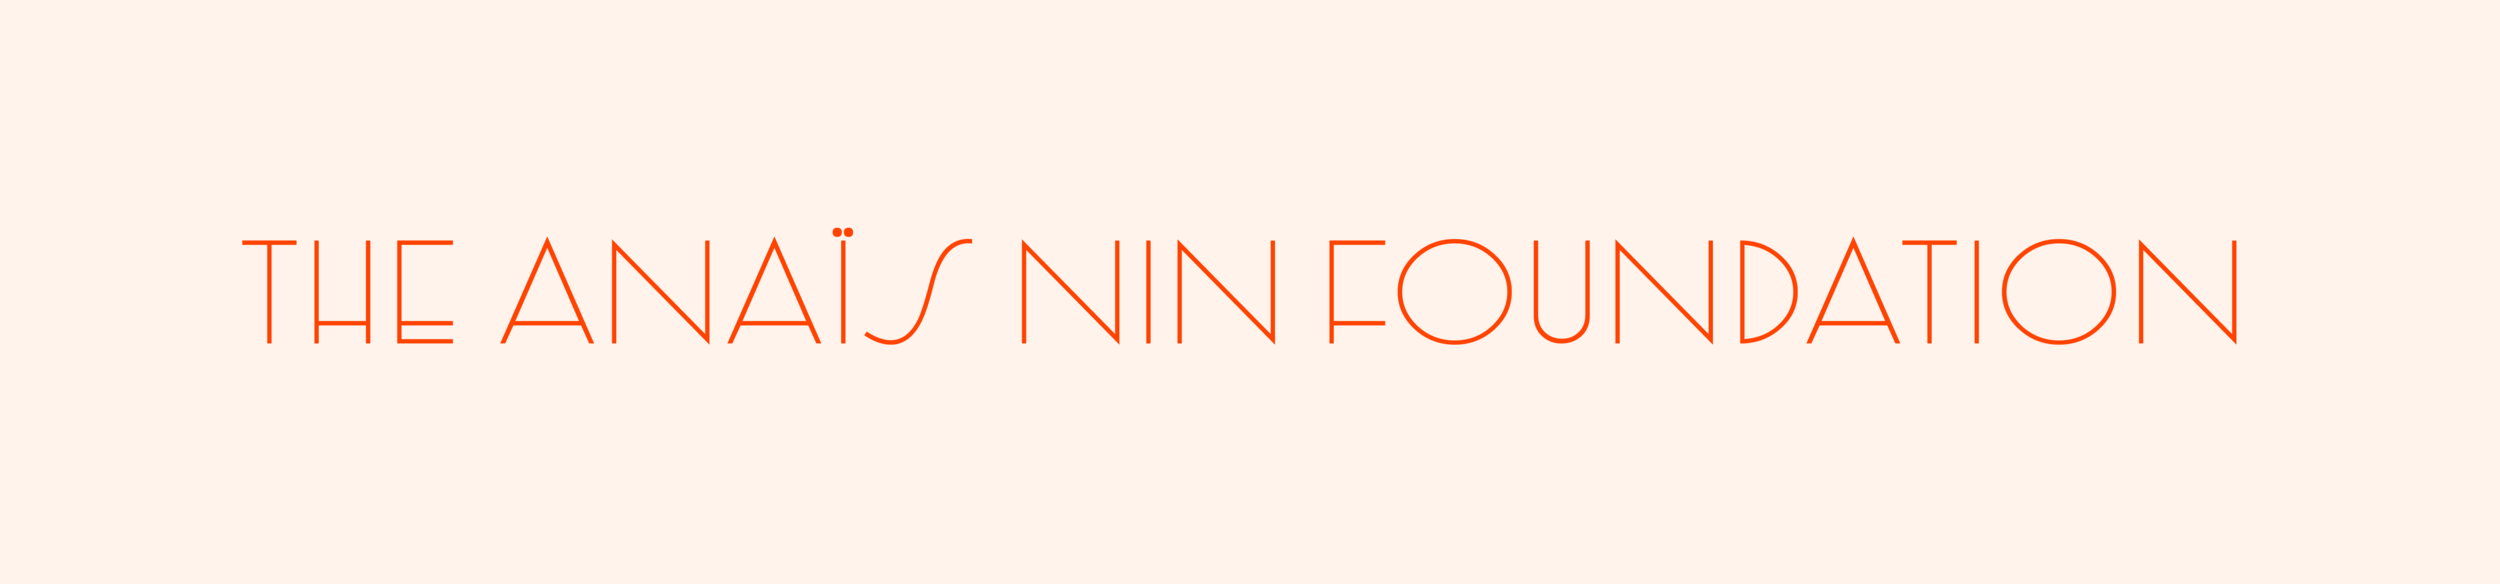 website-nin-foundation_1500x350_website-ninfoundation-1500x350.png